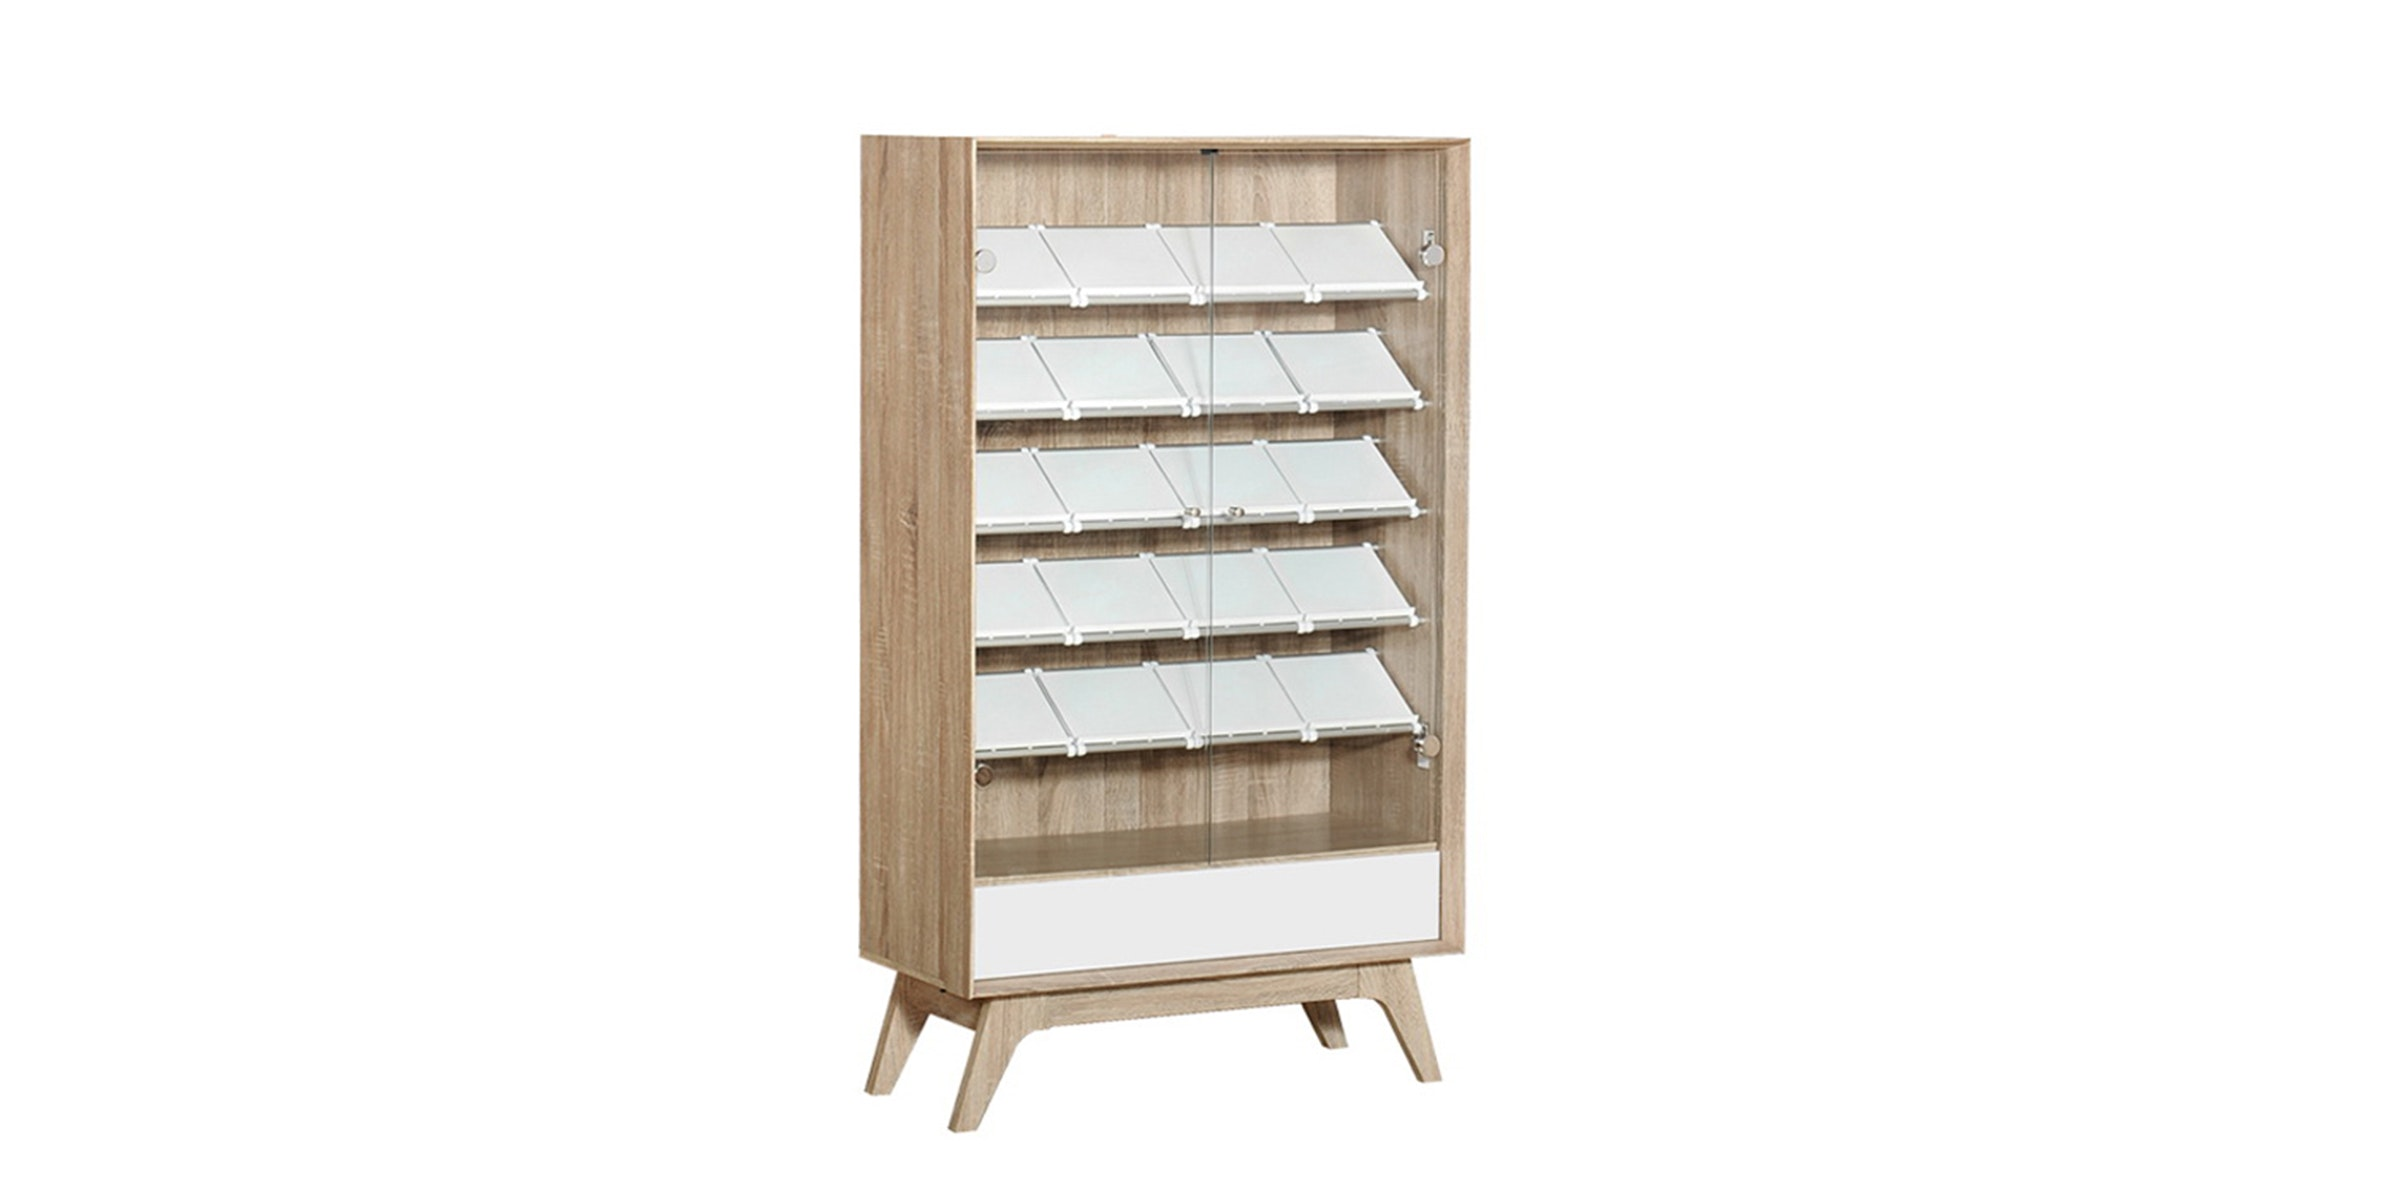 Graver Agusto Shoes Rack 5 Rak Laci Putih